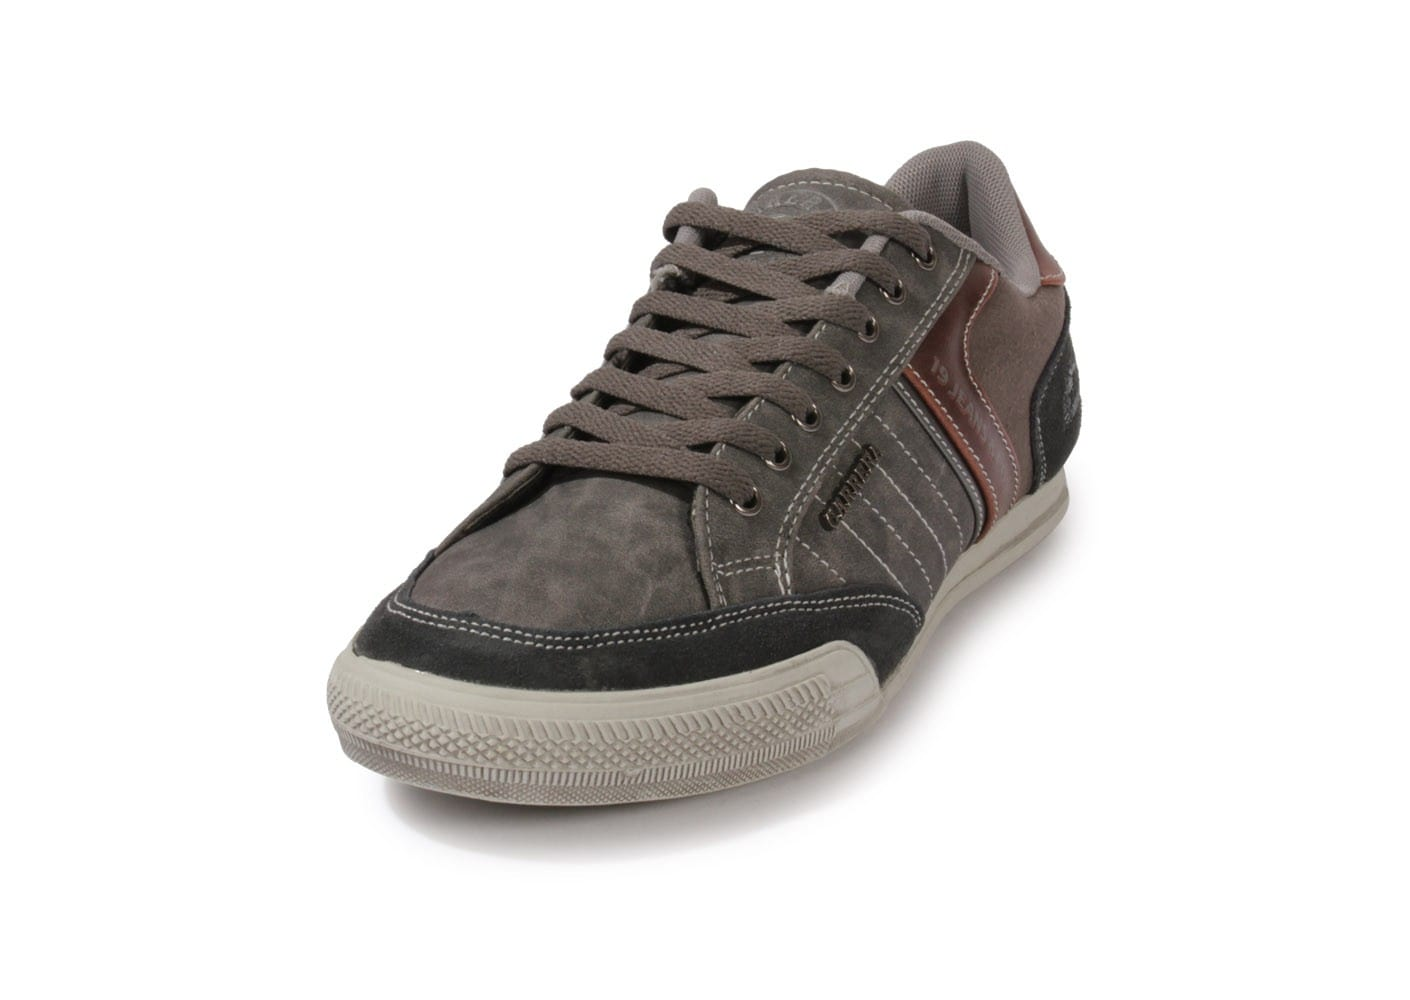 65 Off Adidas Adidas Chaussure Chaussure Intersport n7f4q